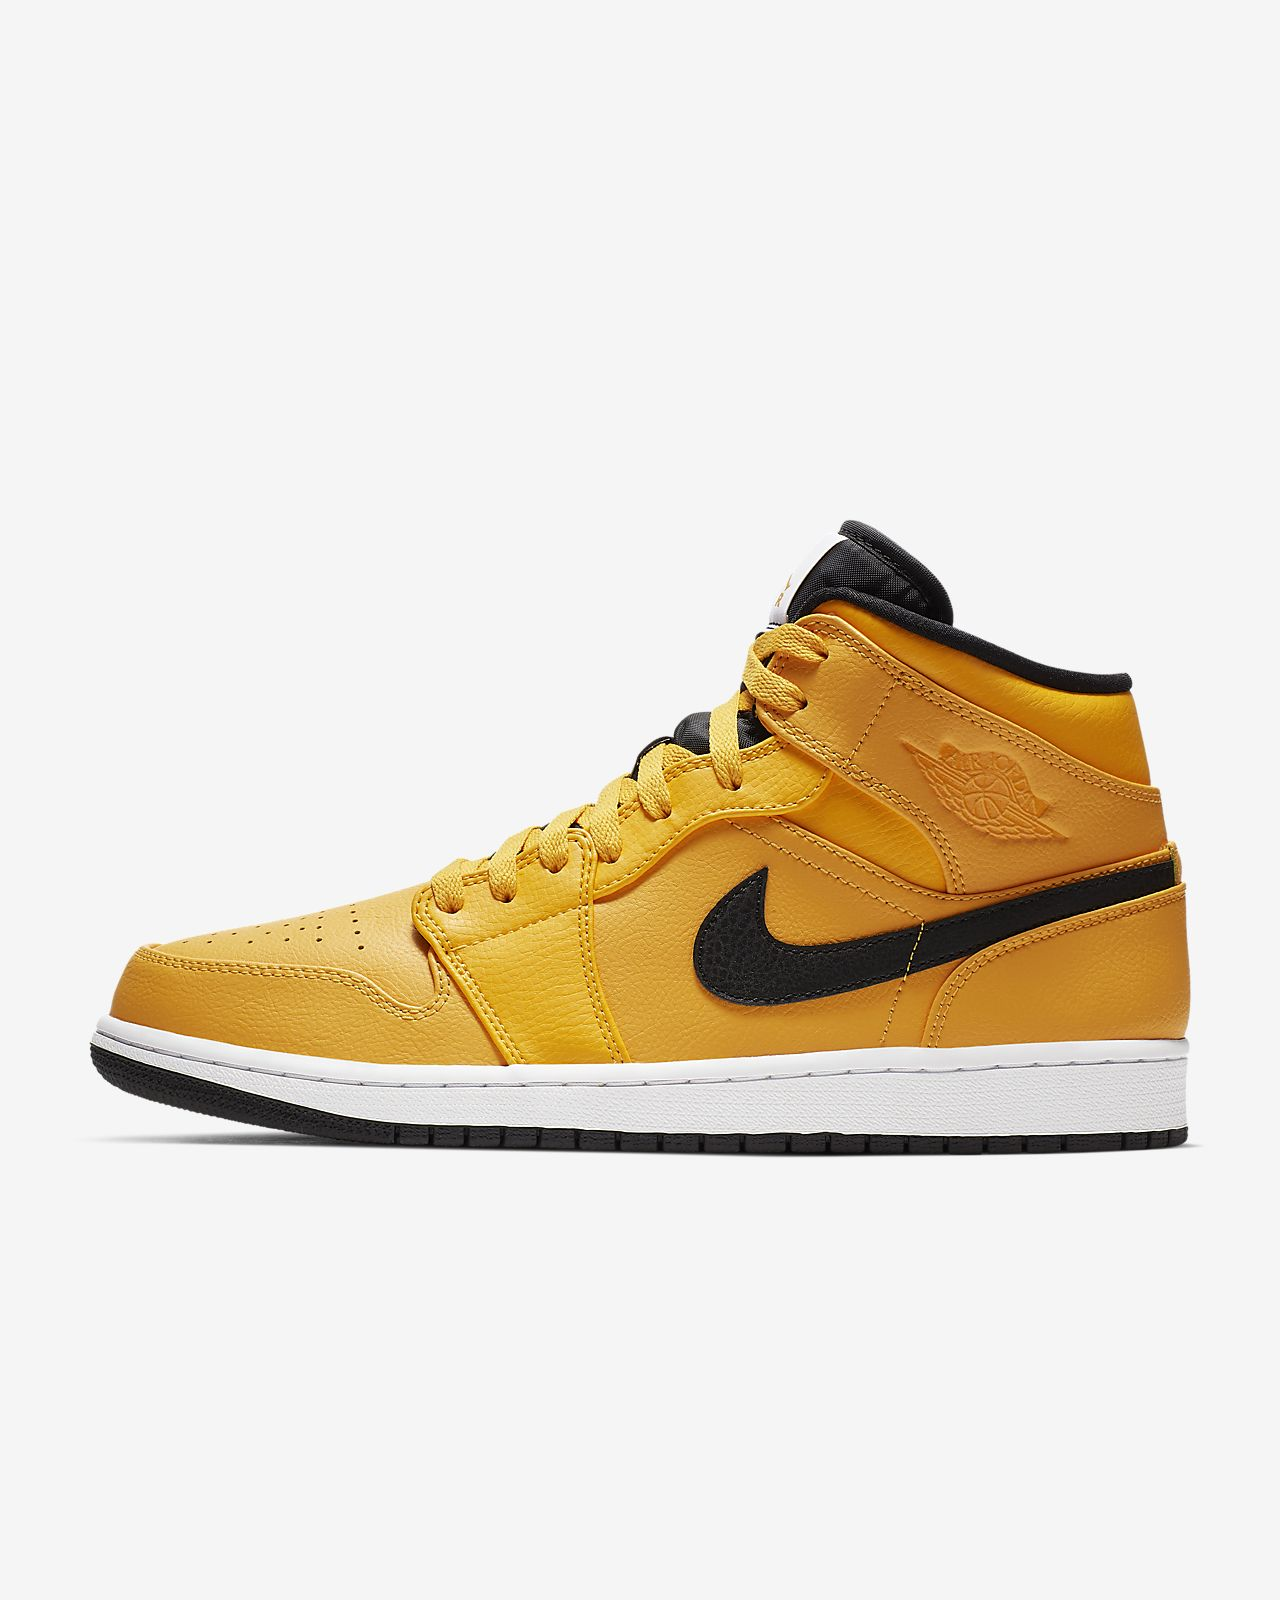 on sale 63fe6 2f629 Men s Shoe. Air Jordan 1 Mid